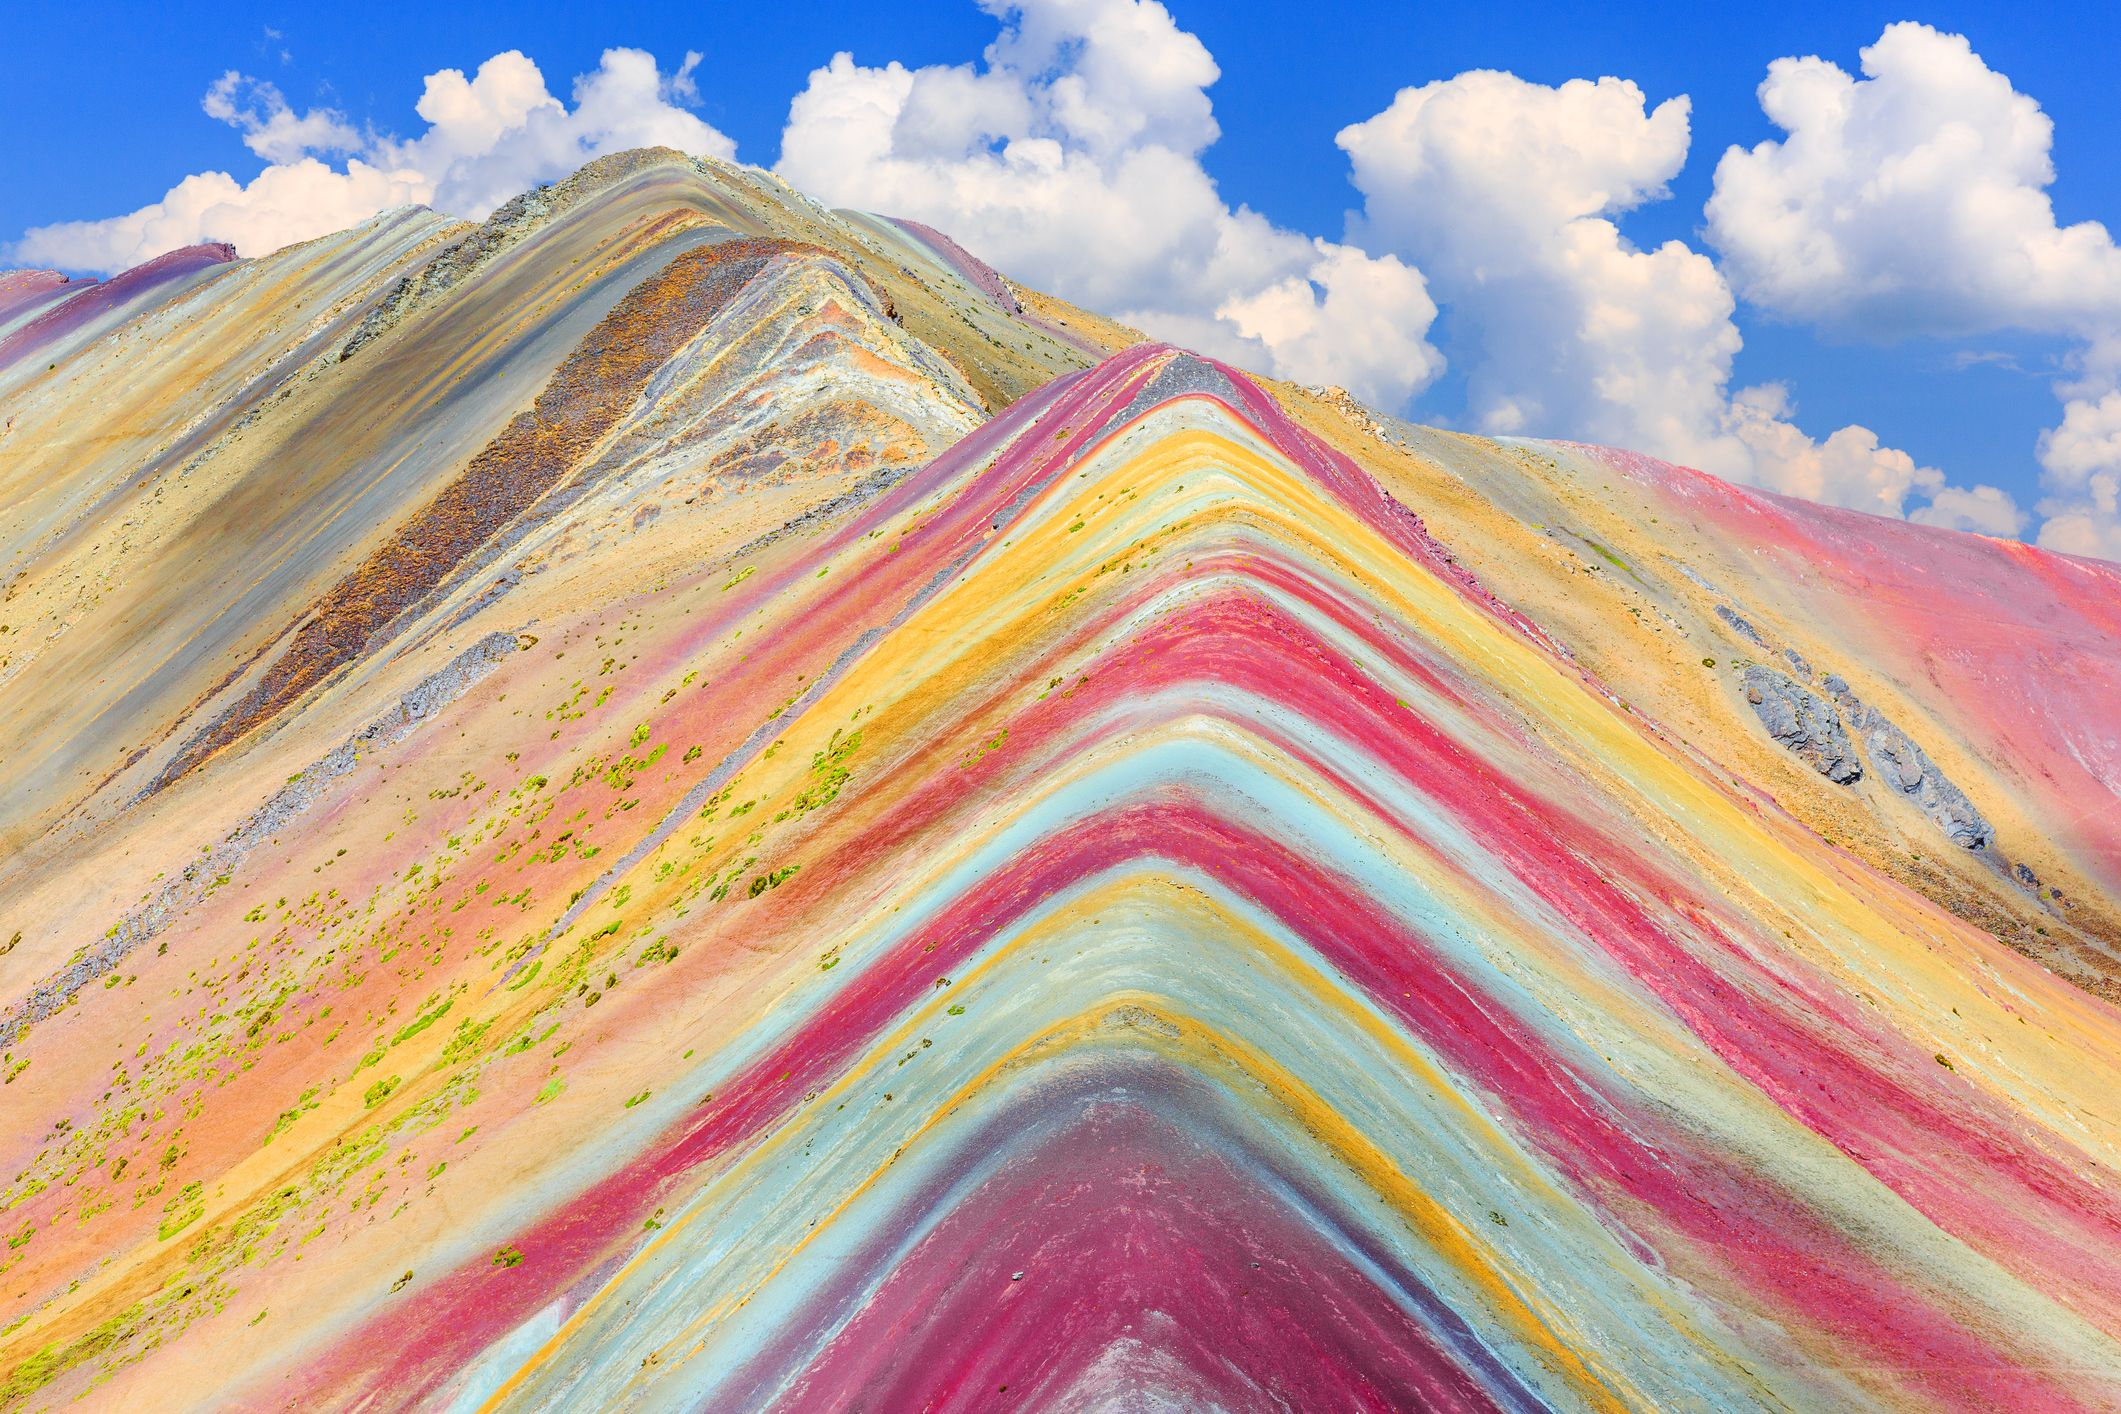 Is this Peru's Most Photogenic Mountain?